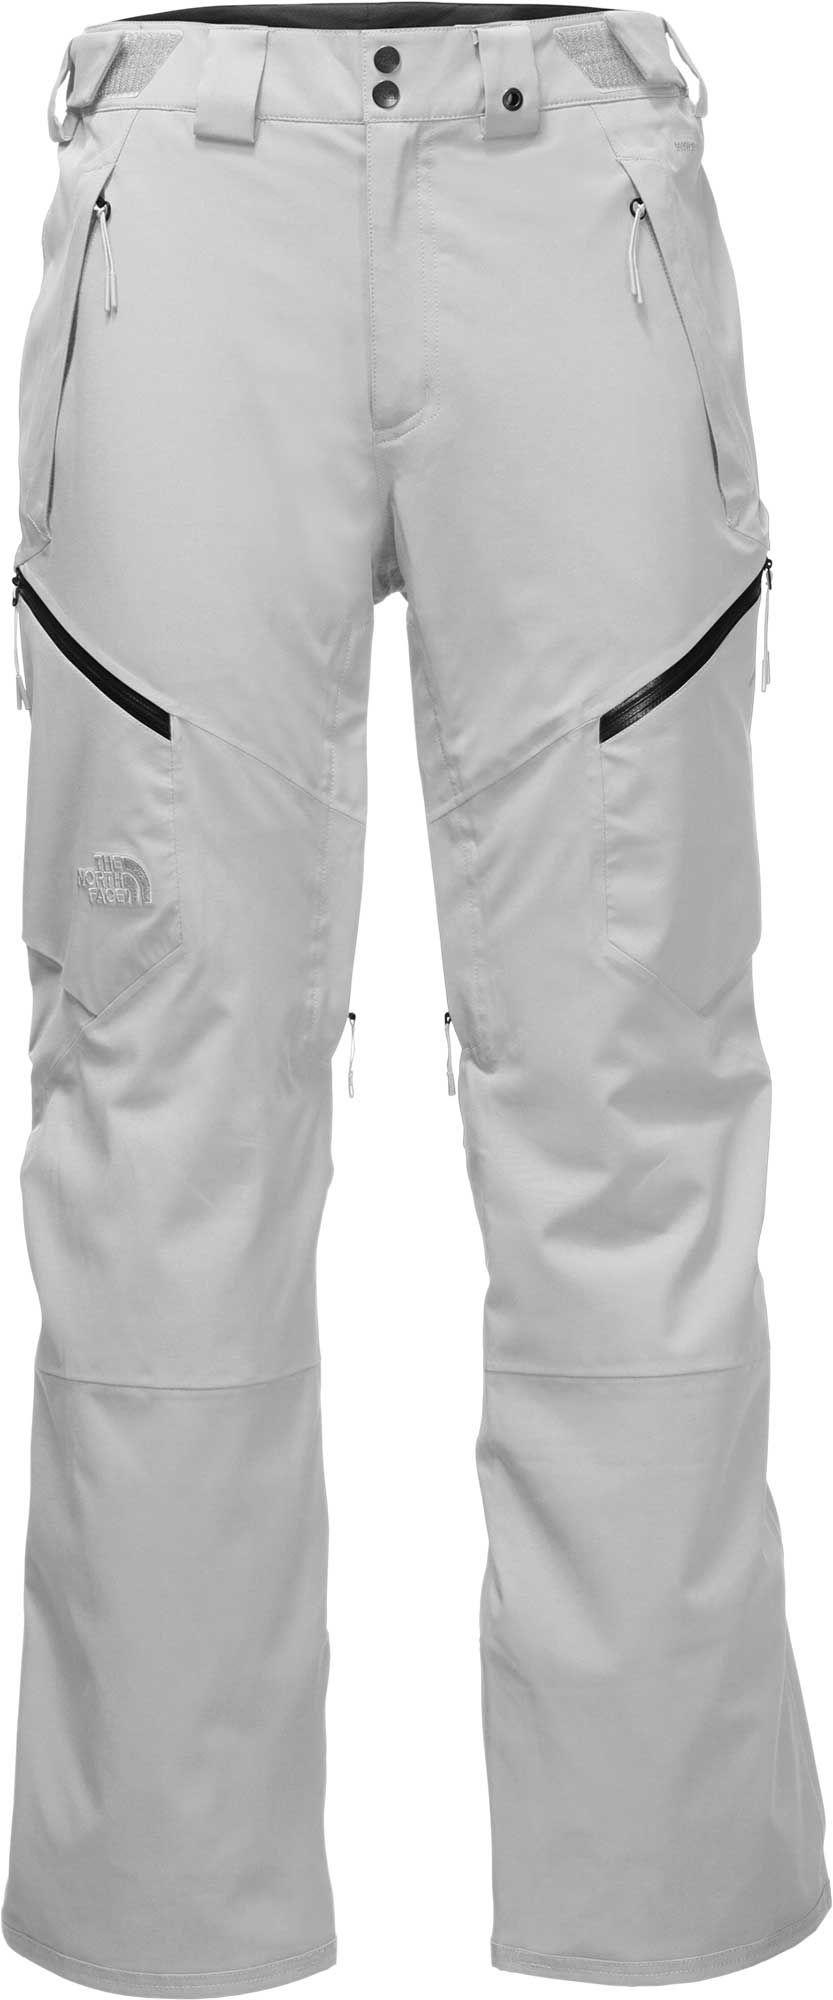 bd13f3216 The North Face Gray Chakal Pants for men